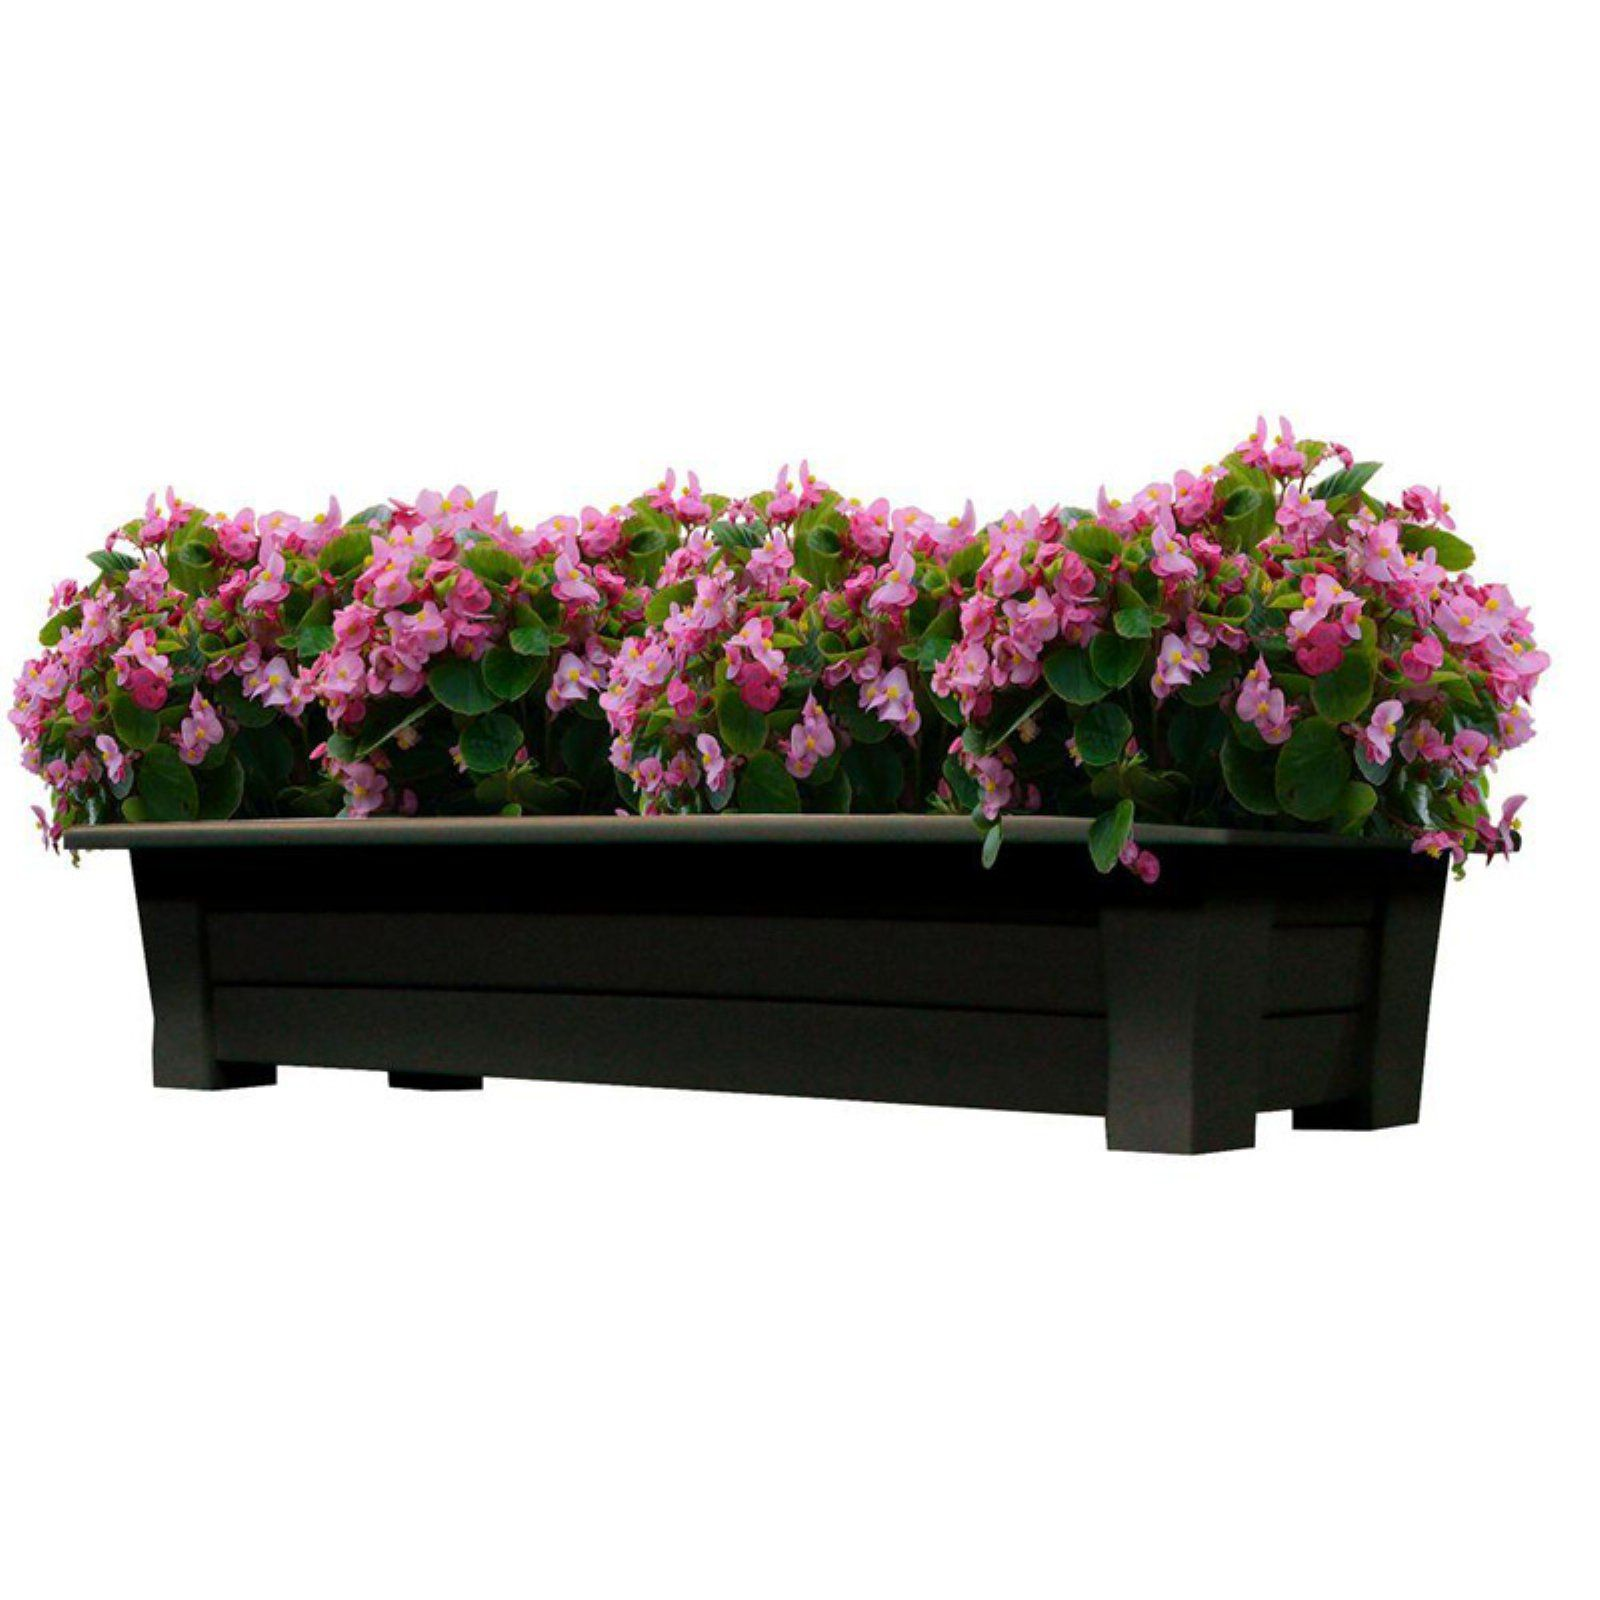 adams manufacturing rectangle resin deck planter 36 in in 2019 rh pinterest com